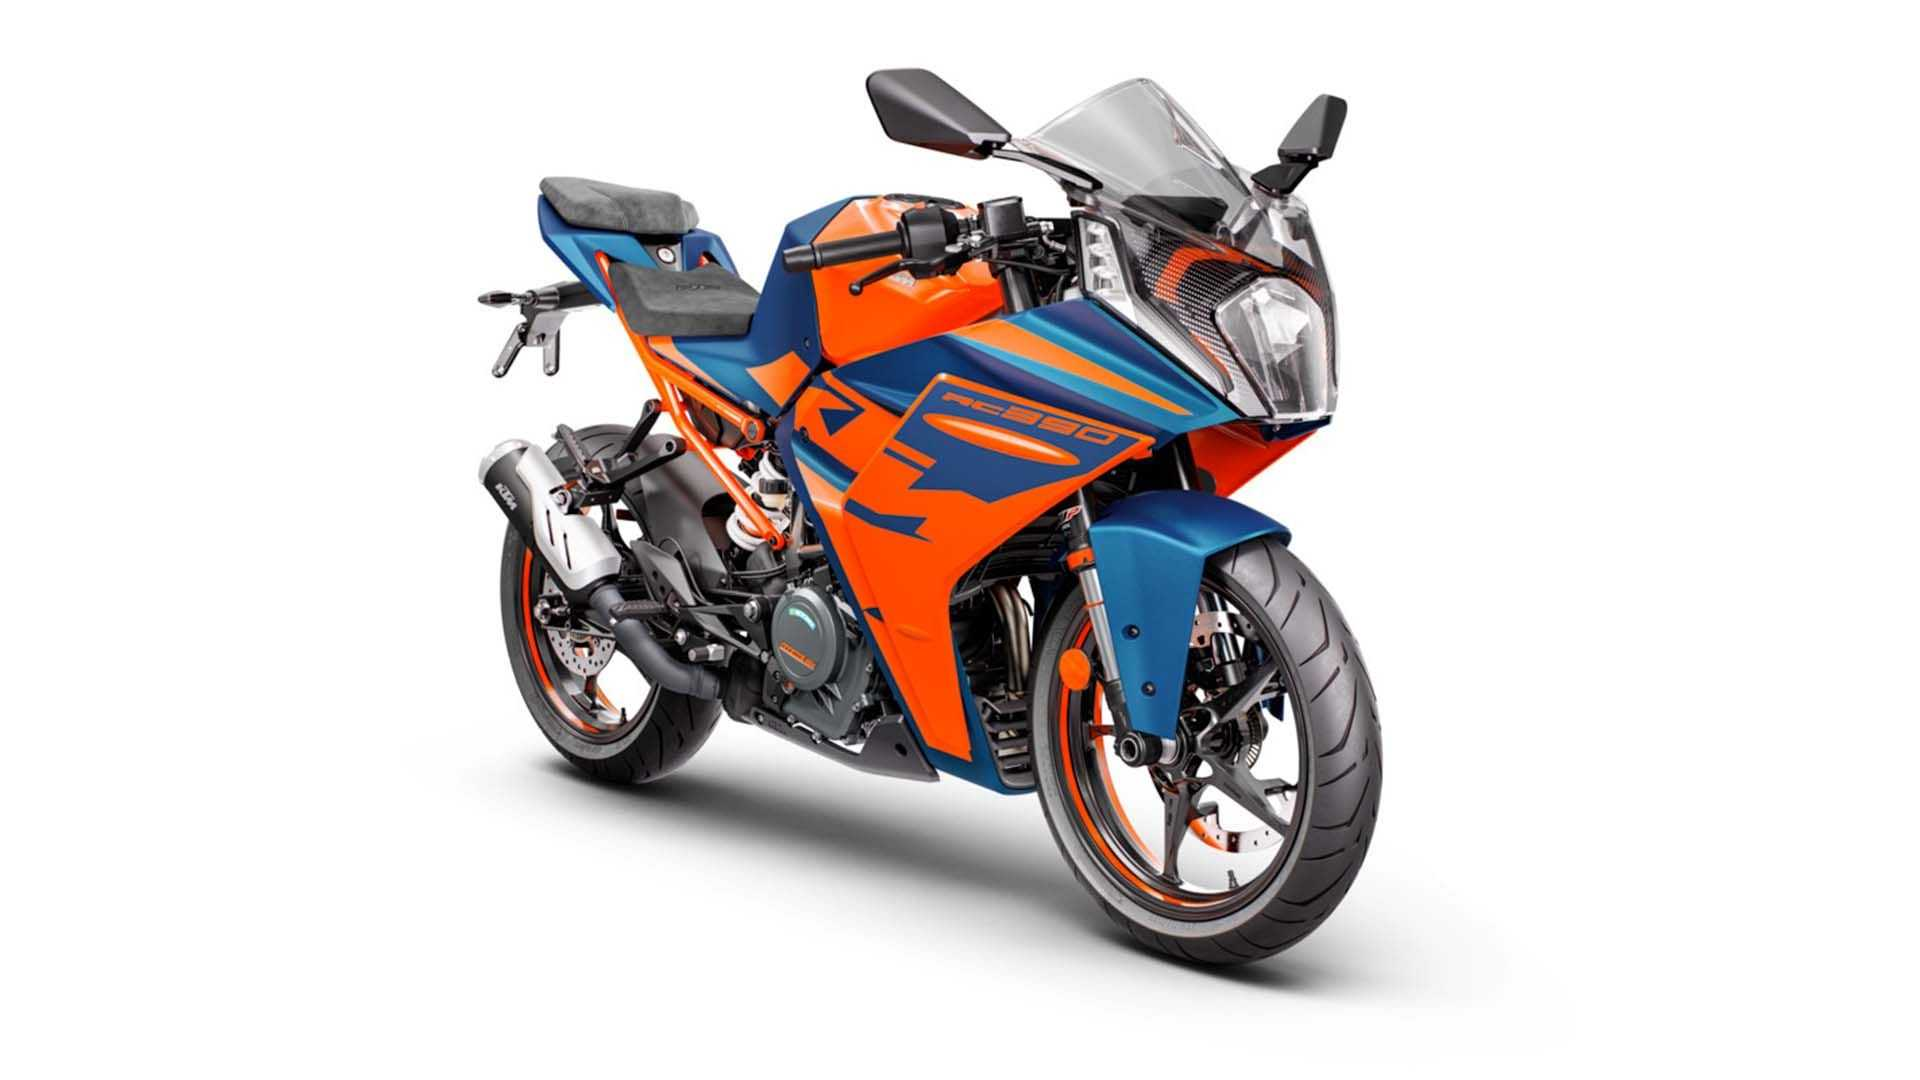 2022 KTM RC 390 - Blue, Front, Right